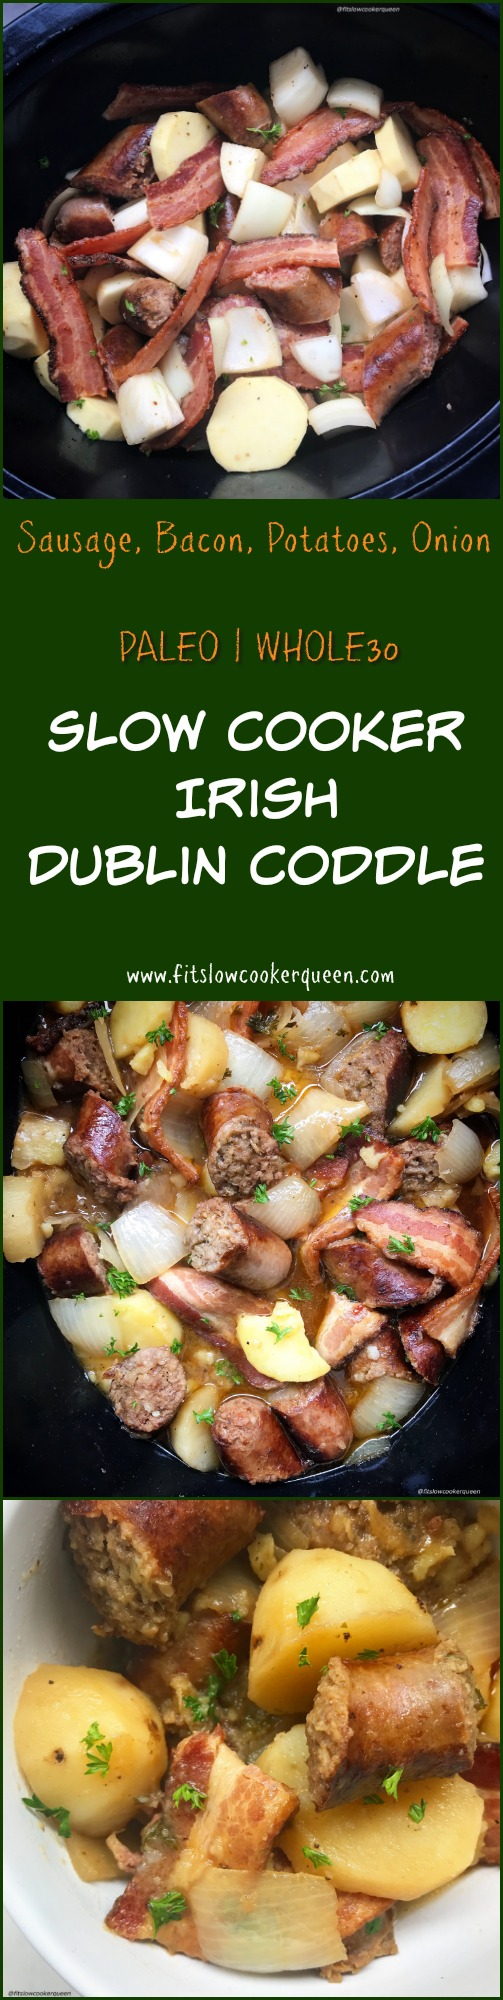 Sausage, bacon, potatoes, and onion. This slow cooker spin on Irish Dublin coddle is definitely hearty yet also whole30 and paleo compliant. You can serve this St. Patrick's Day recipe for breakfast, lunch or dinner.